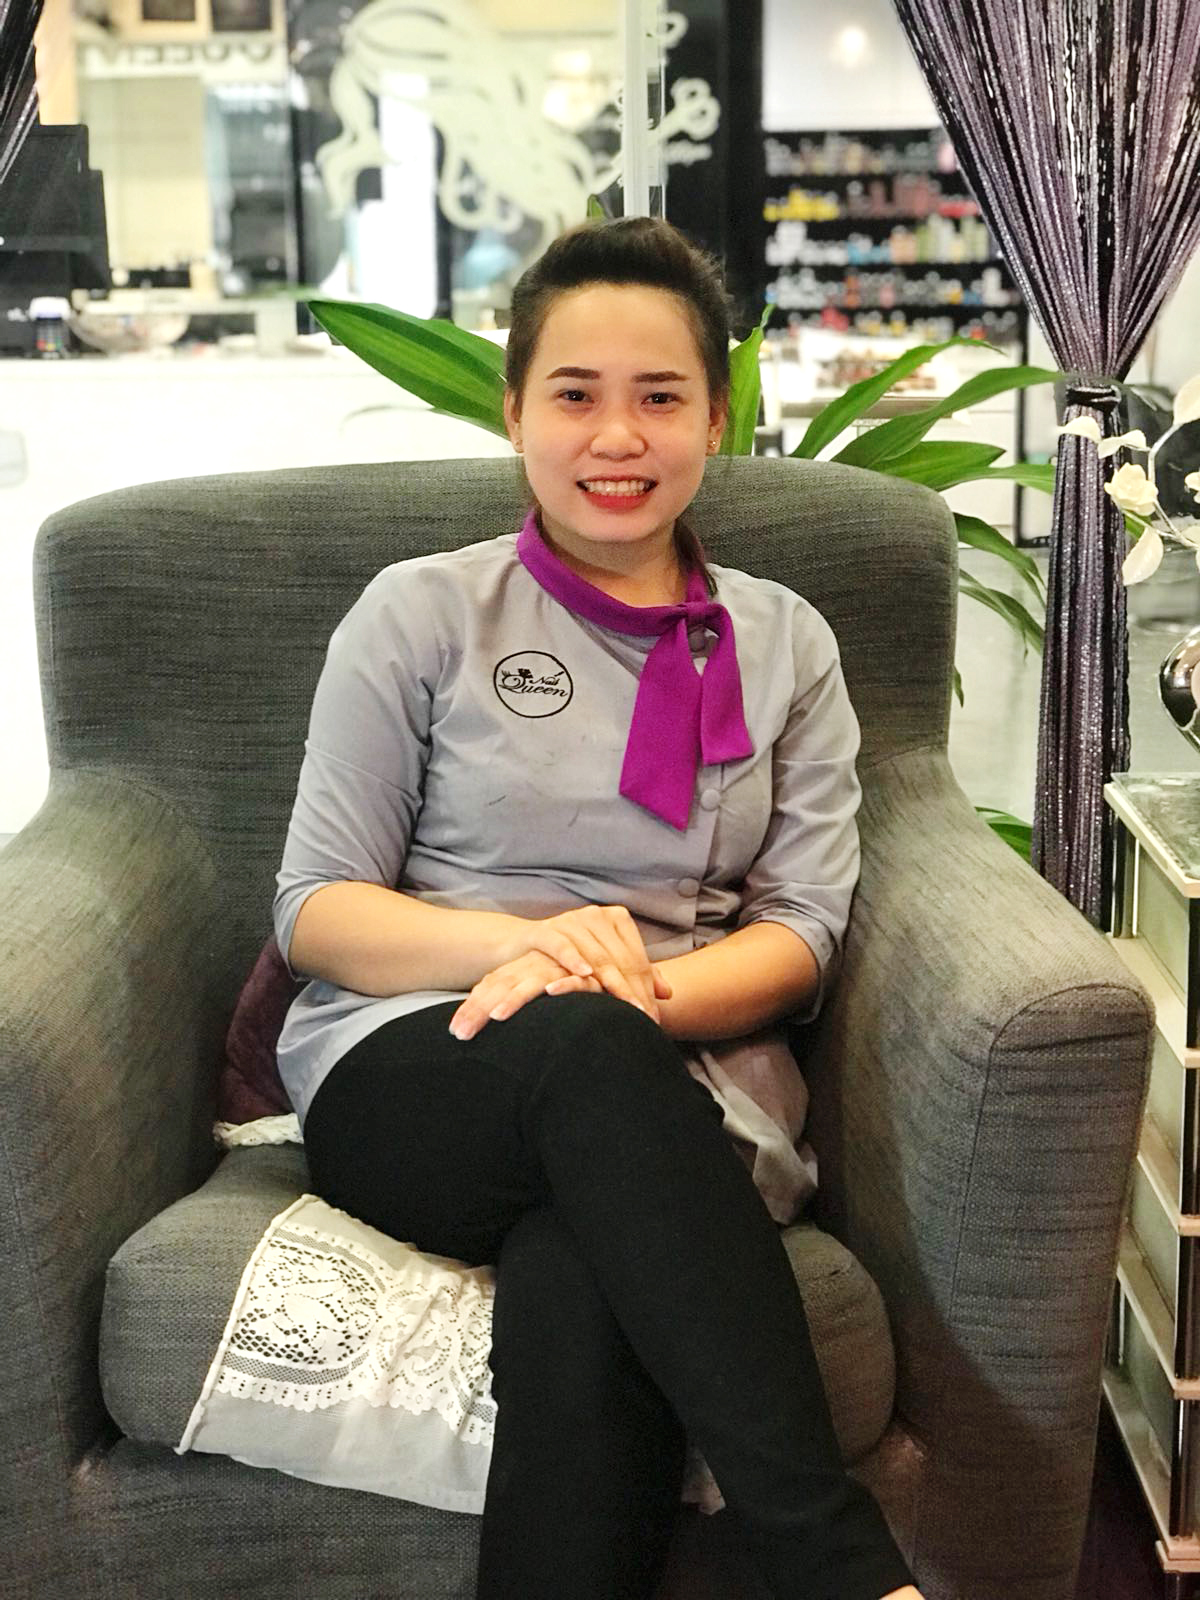 Gem - Gem, a new member of the Nail Queen Family, who joined us in June 2018, who was already well skilled from her prior experience, she is careful with her tools and you will feel safe in her hands taking care of your nail grooming. Our guests really like her courteous personality!Gem speaks Vietnamese and Mandarin.